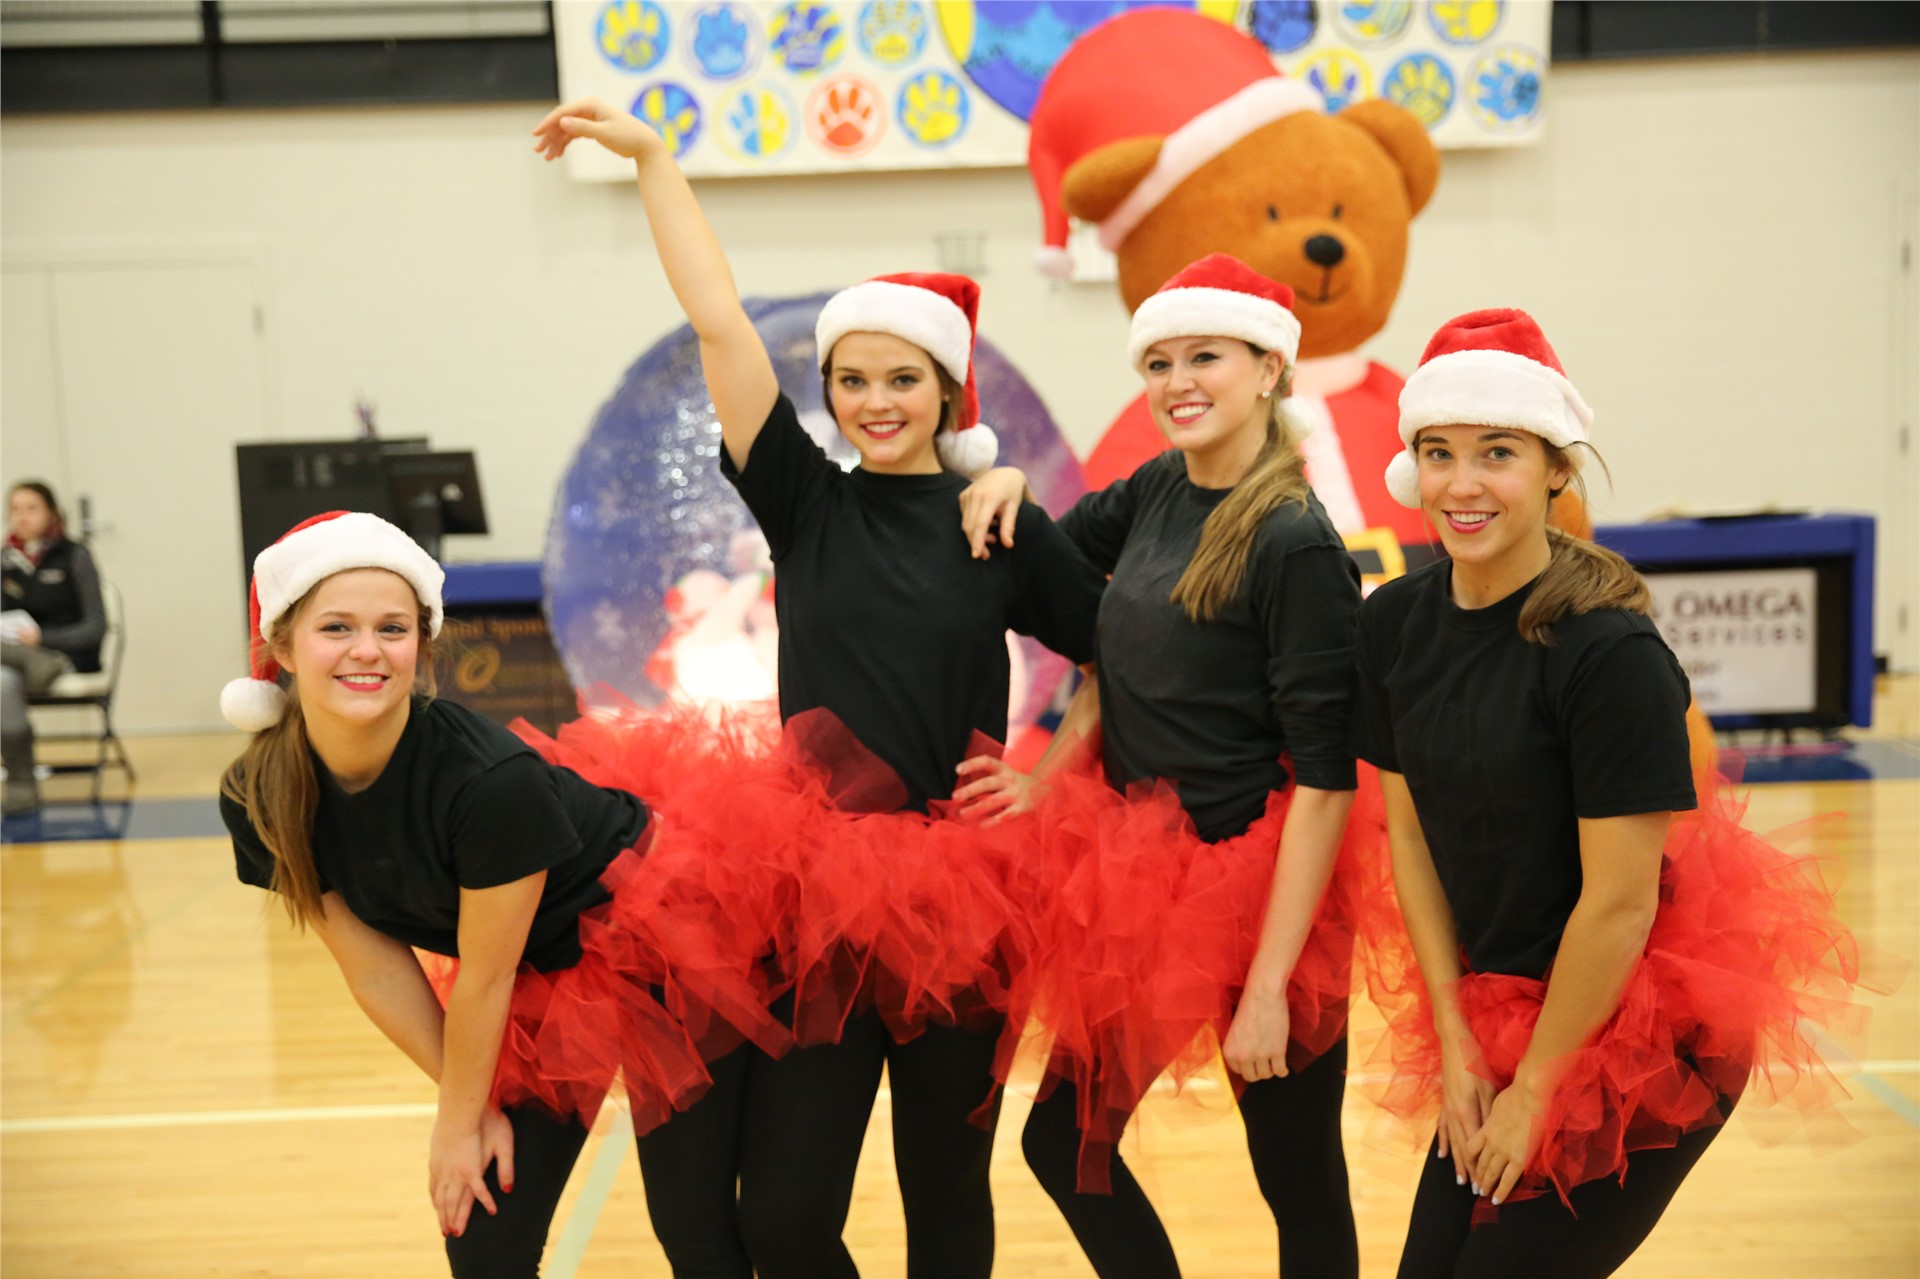 Santa Hats and tutus for a performance at the Pep Rally